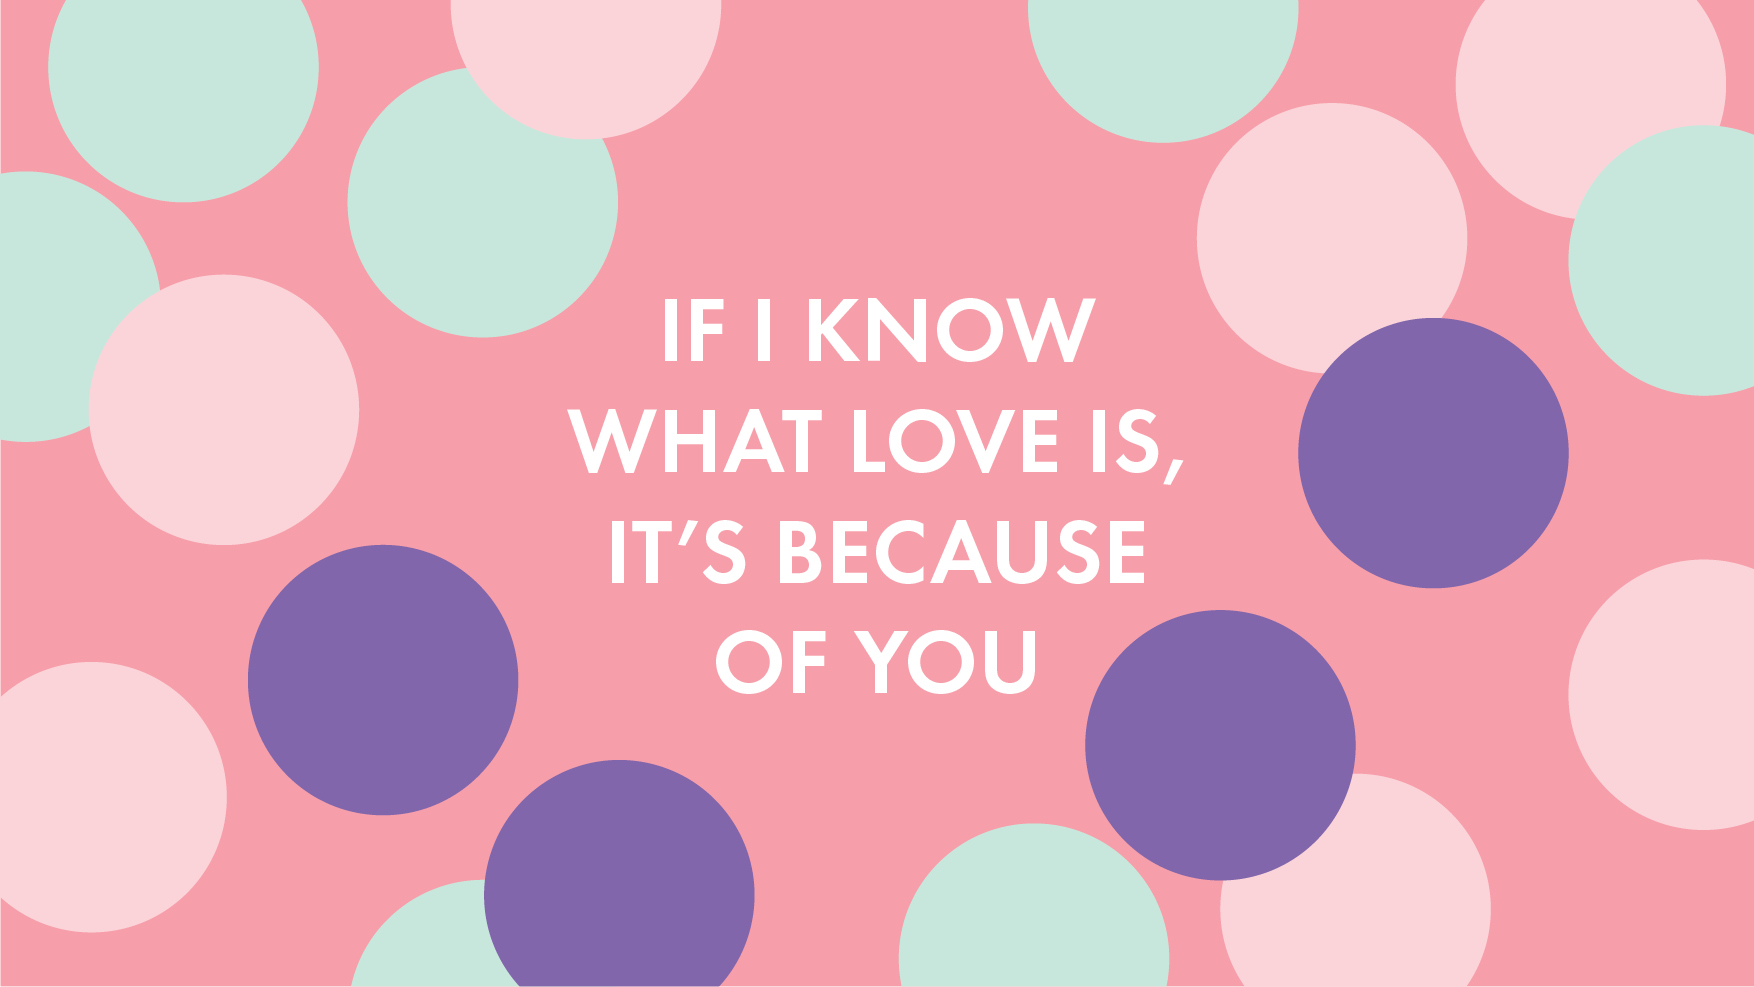 If I know what love is it's because of you – Sylvia Park Mother's Day retail activation photo booth theme 2021